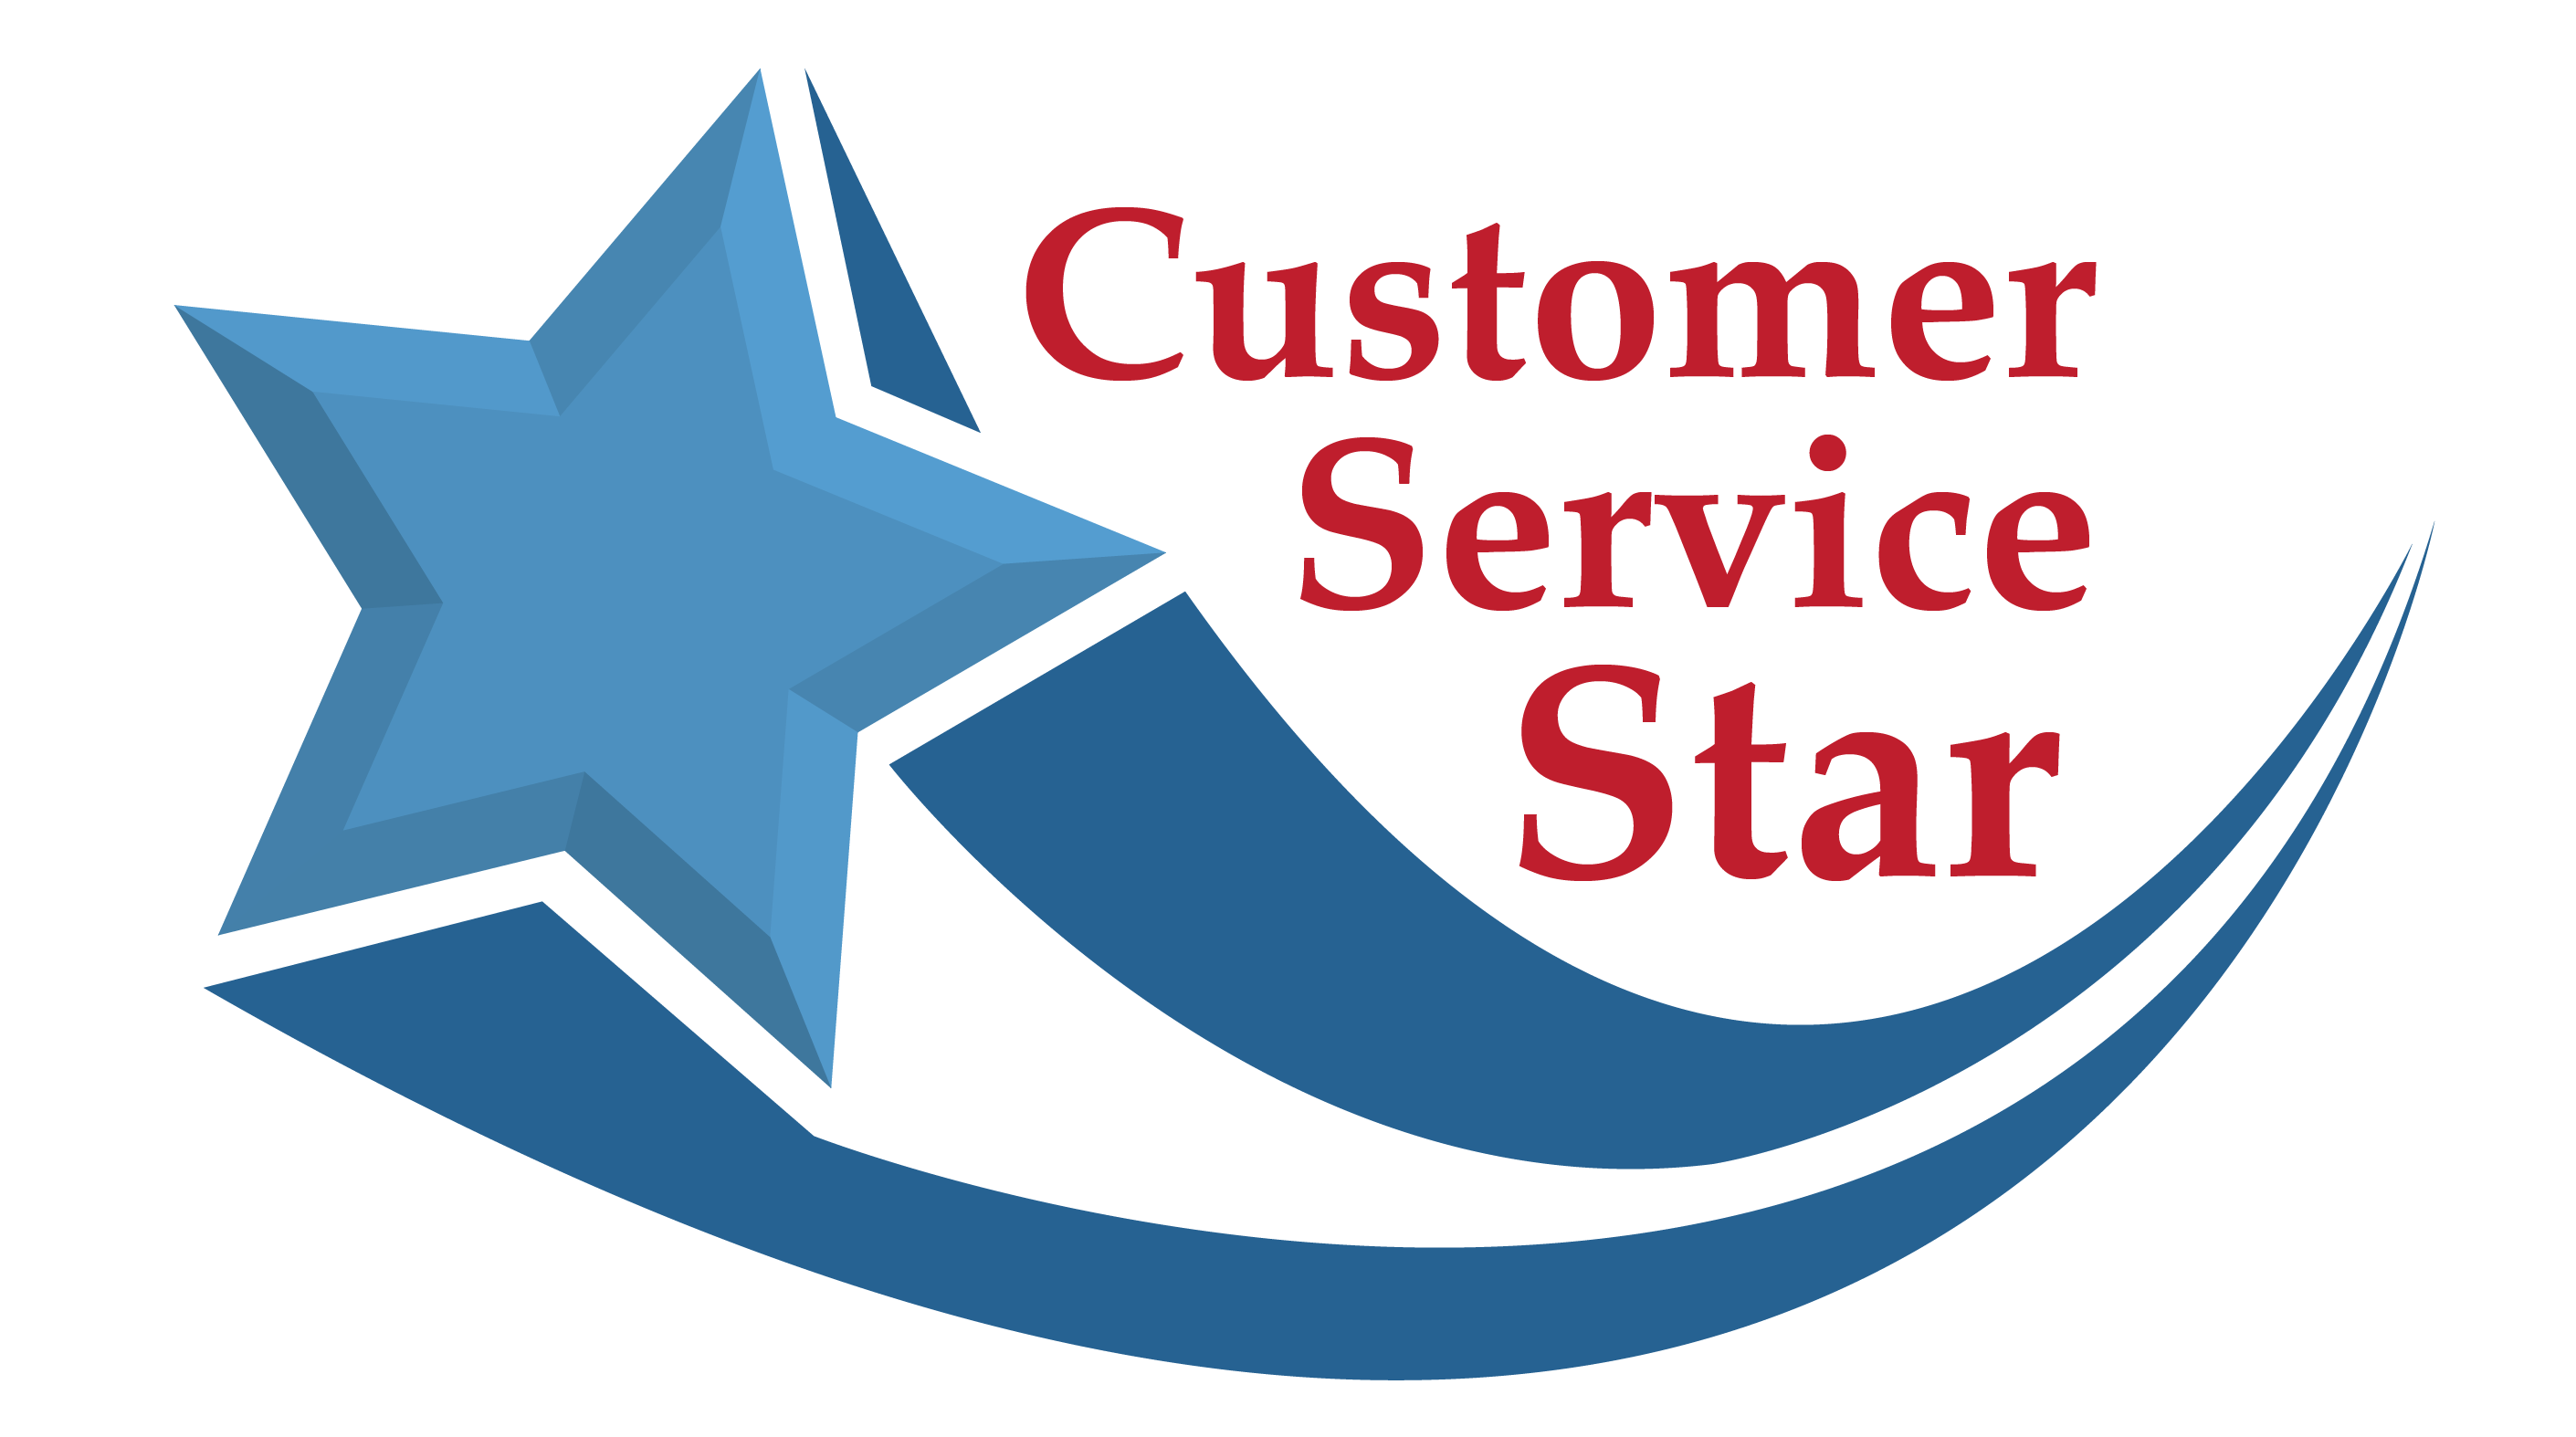 cutomer service0 When it comes down to it, customers really only want a few things if there's a problem with your service or product.